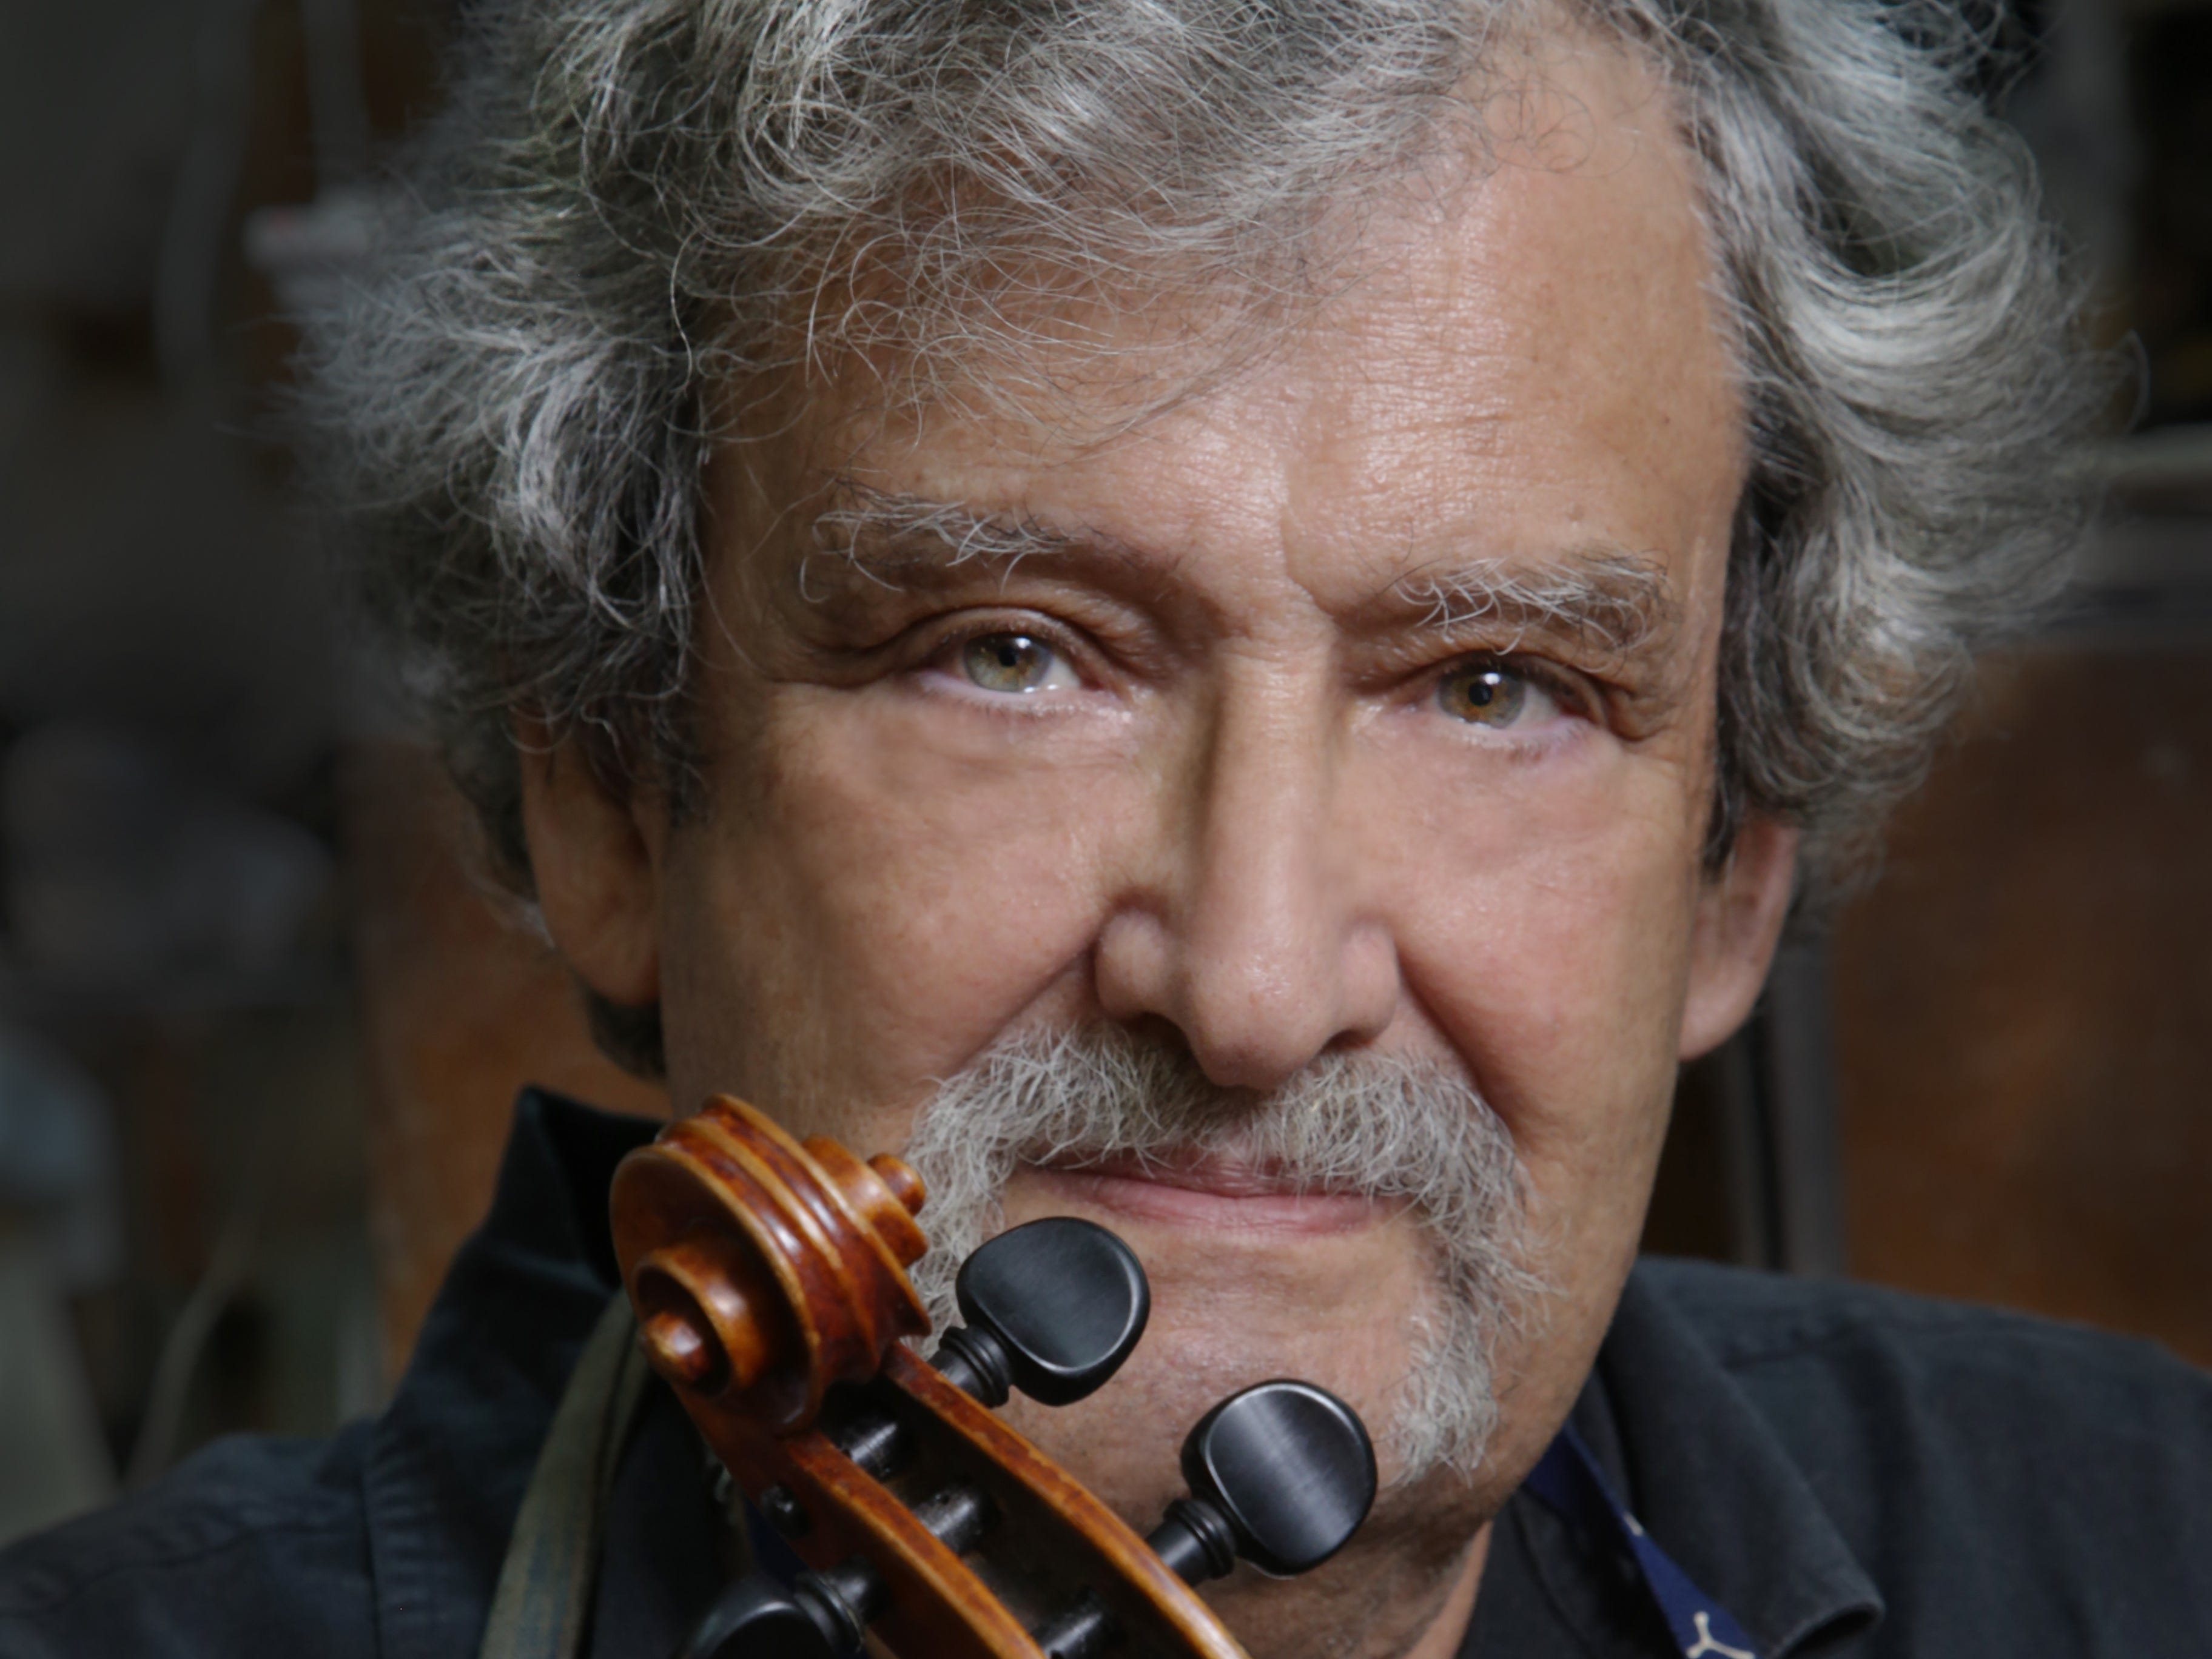 Israeli violinmaker Amnon Weinstein has devoted himself to restoring violins rescued from the Holocaustfor the past two decades.